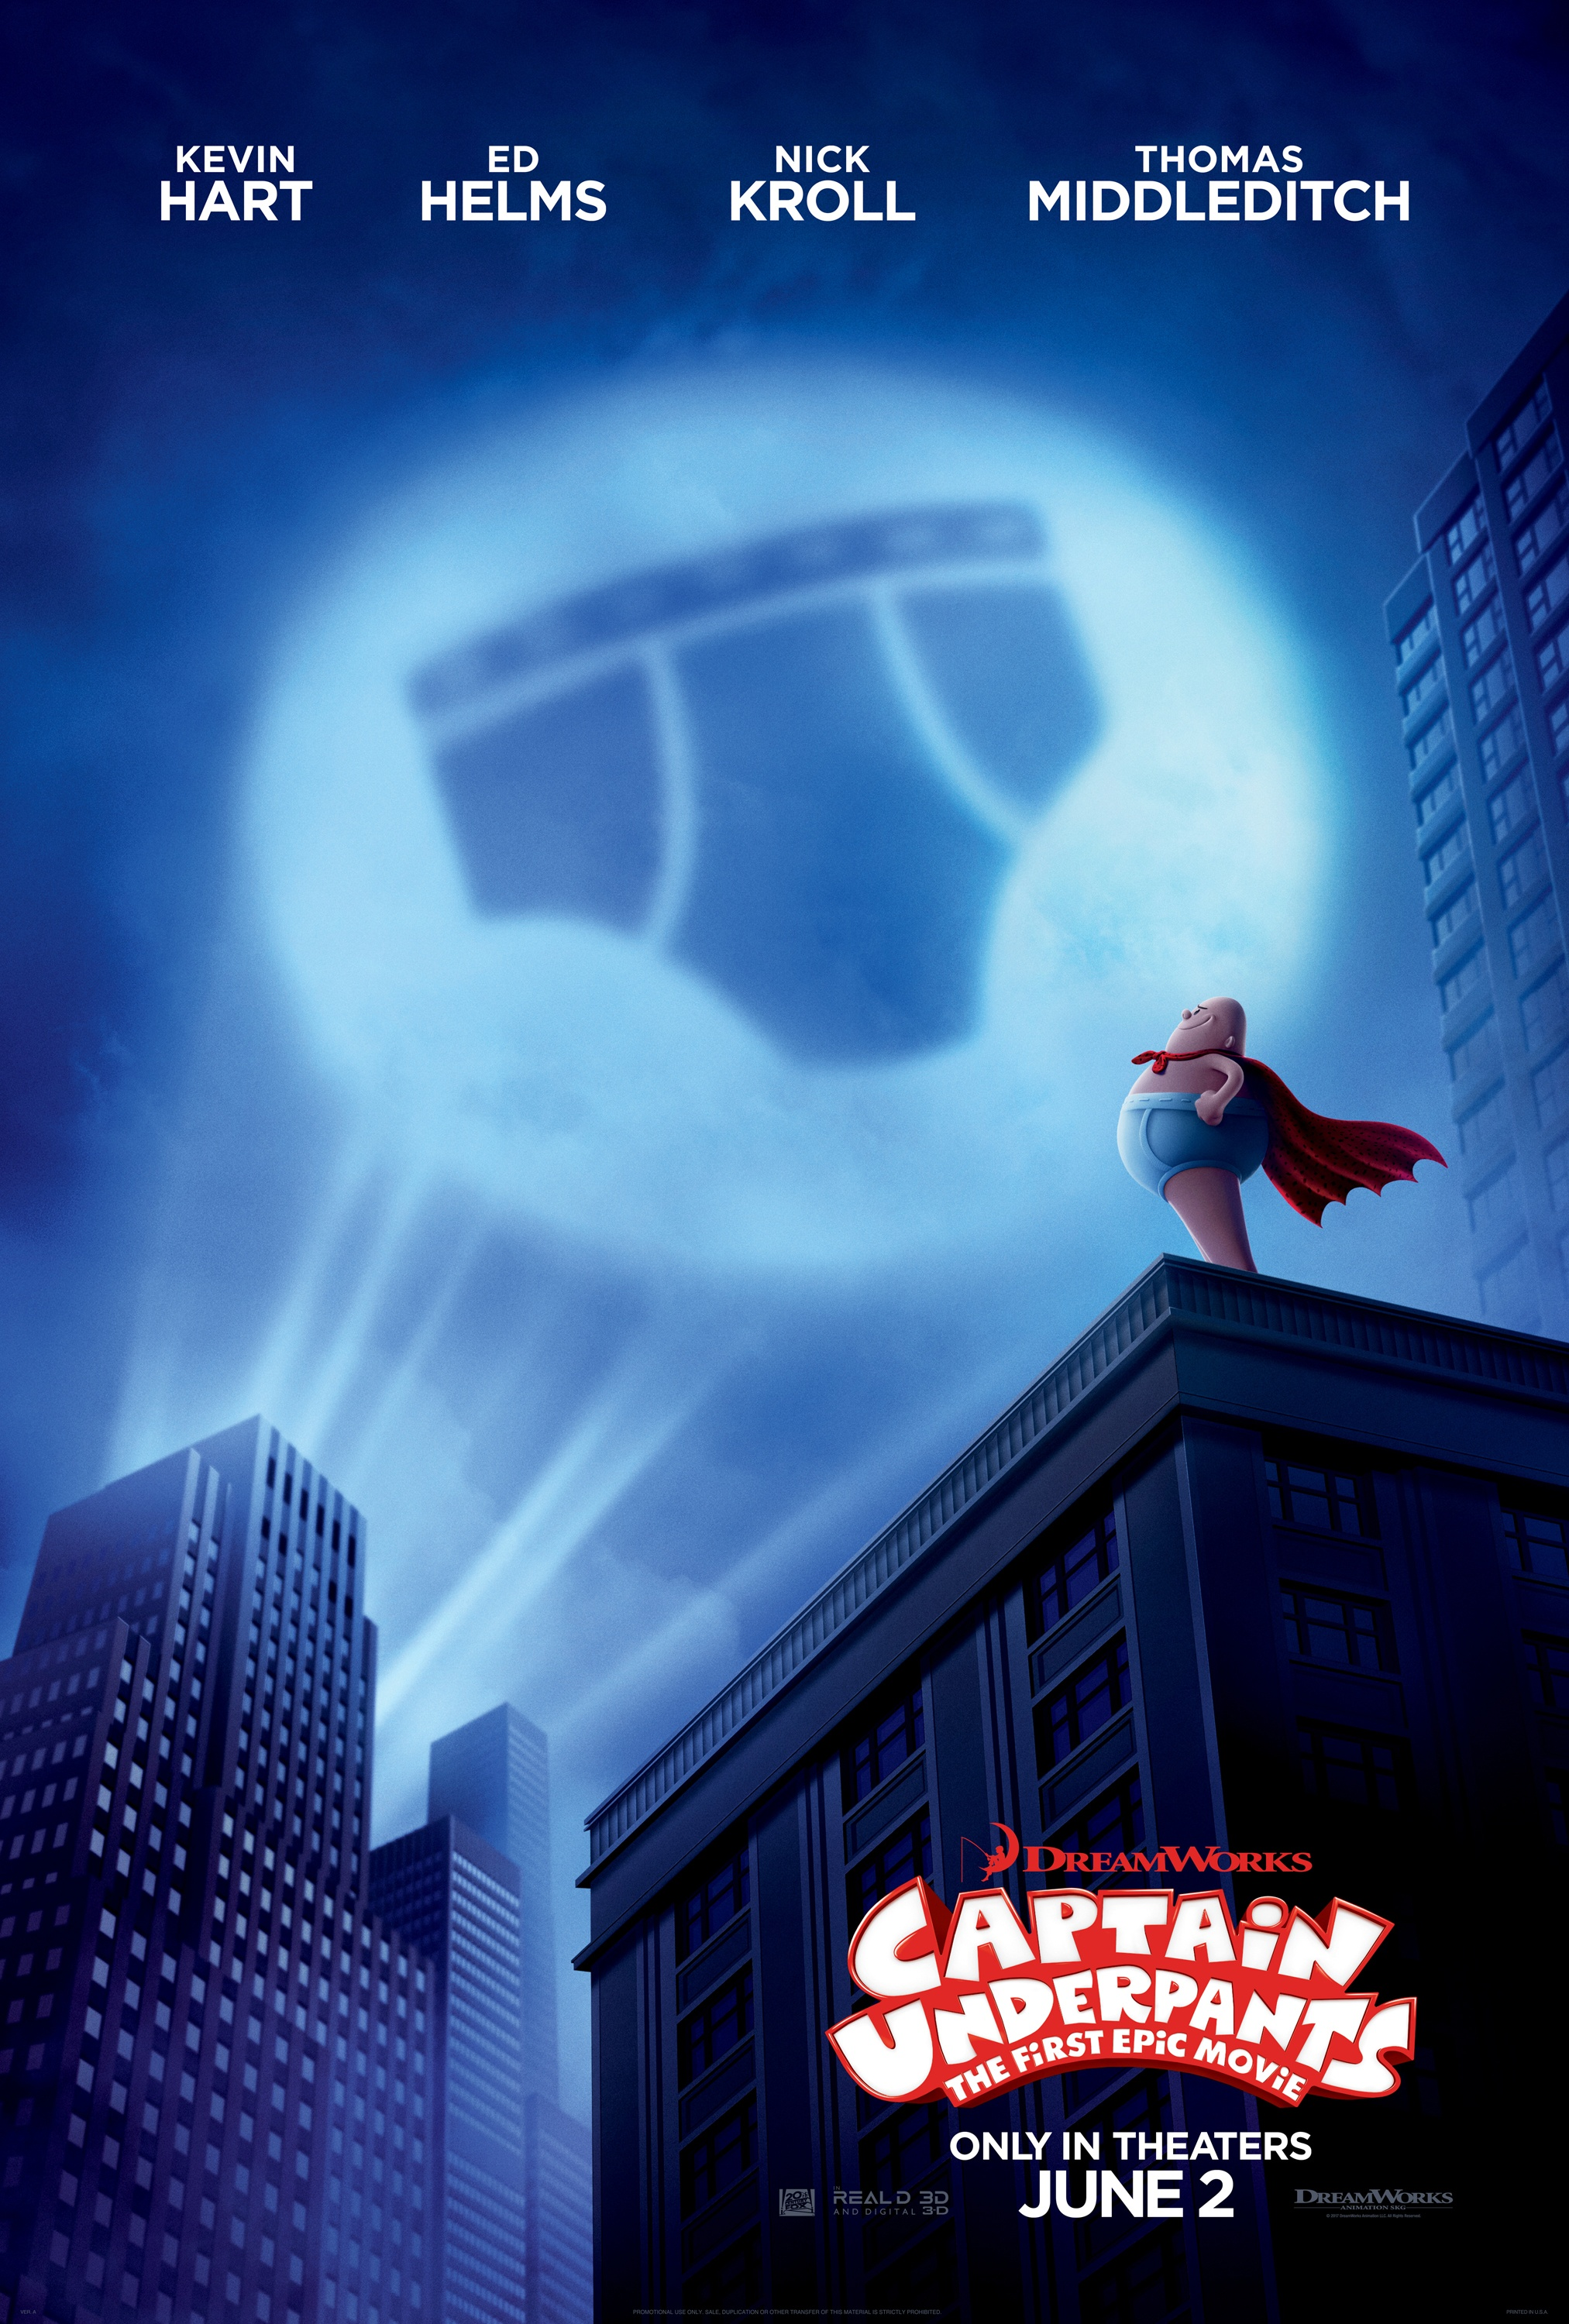 This mom loves the new Captain Underpants : The First Epic Movie! Lots of giggles for kids AND parents. It opens in theaters June 2nd!